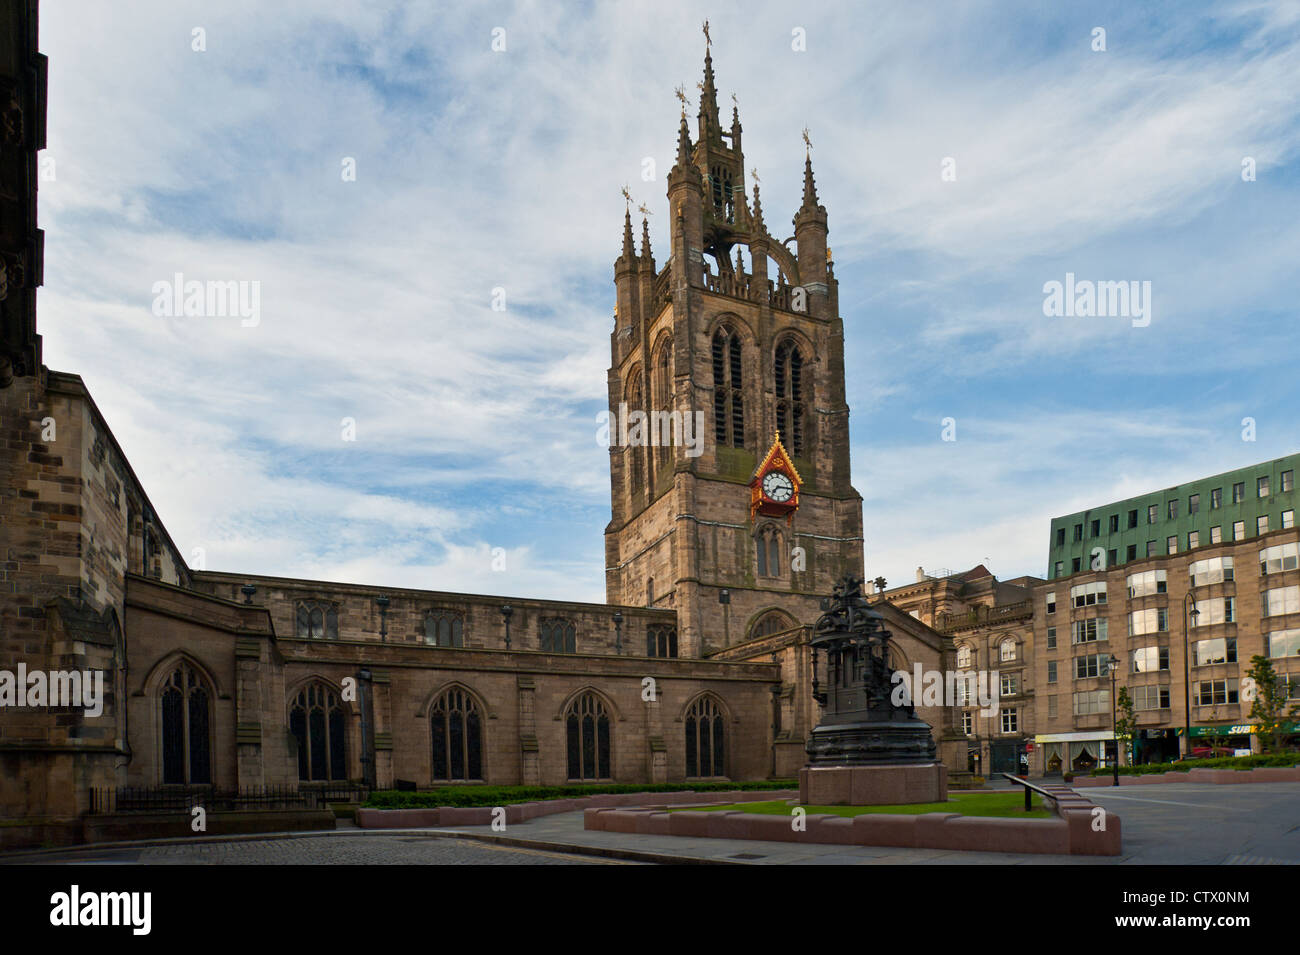 The Cathedral Church of St Nicholas, Newcastle - Stock Image